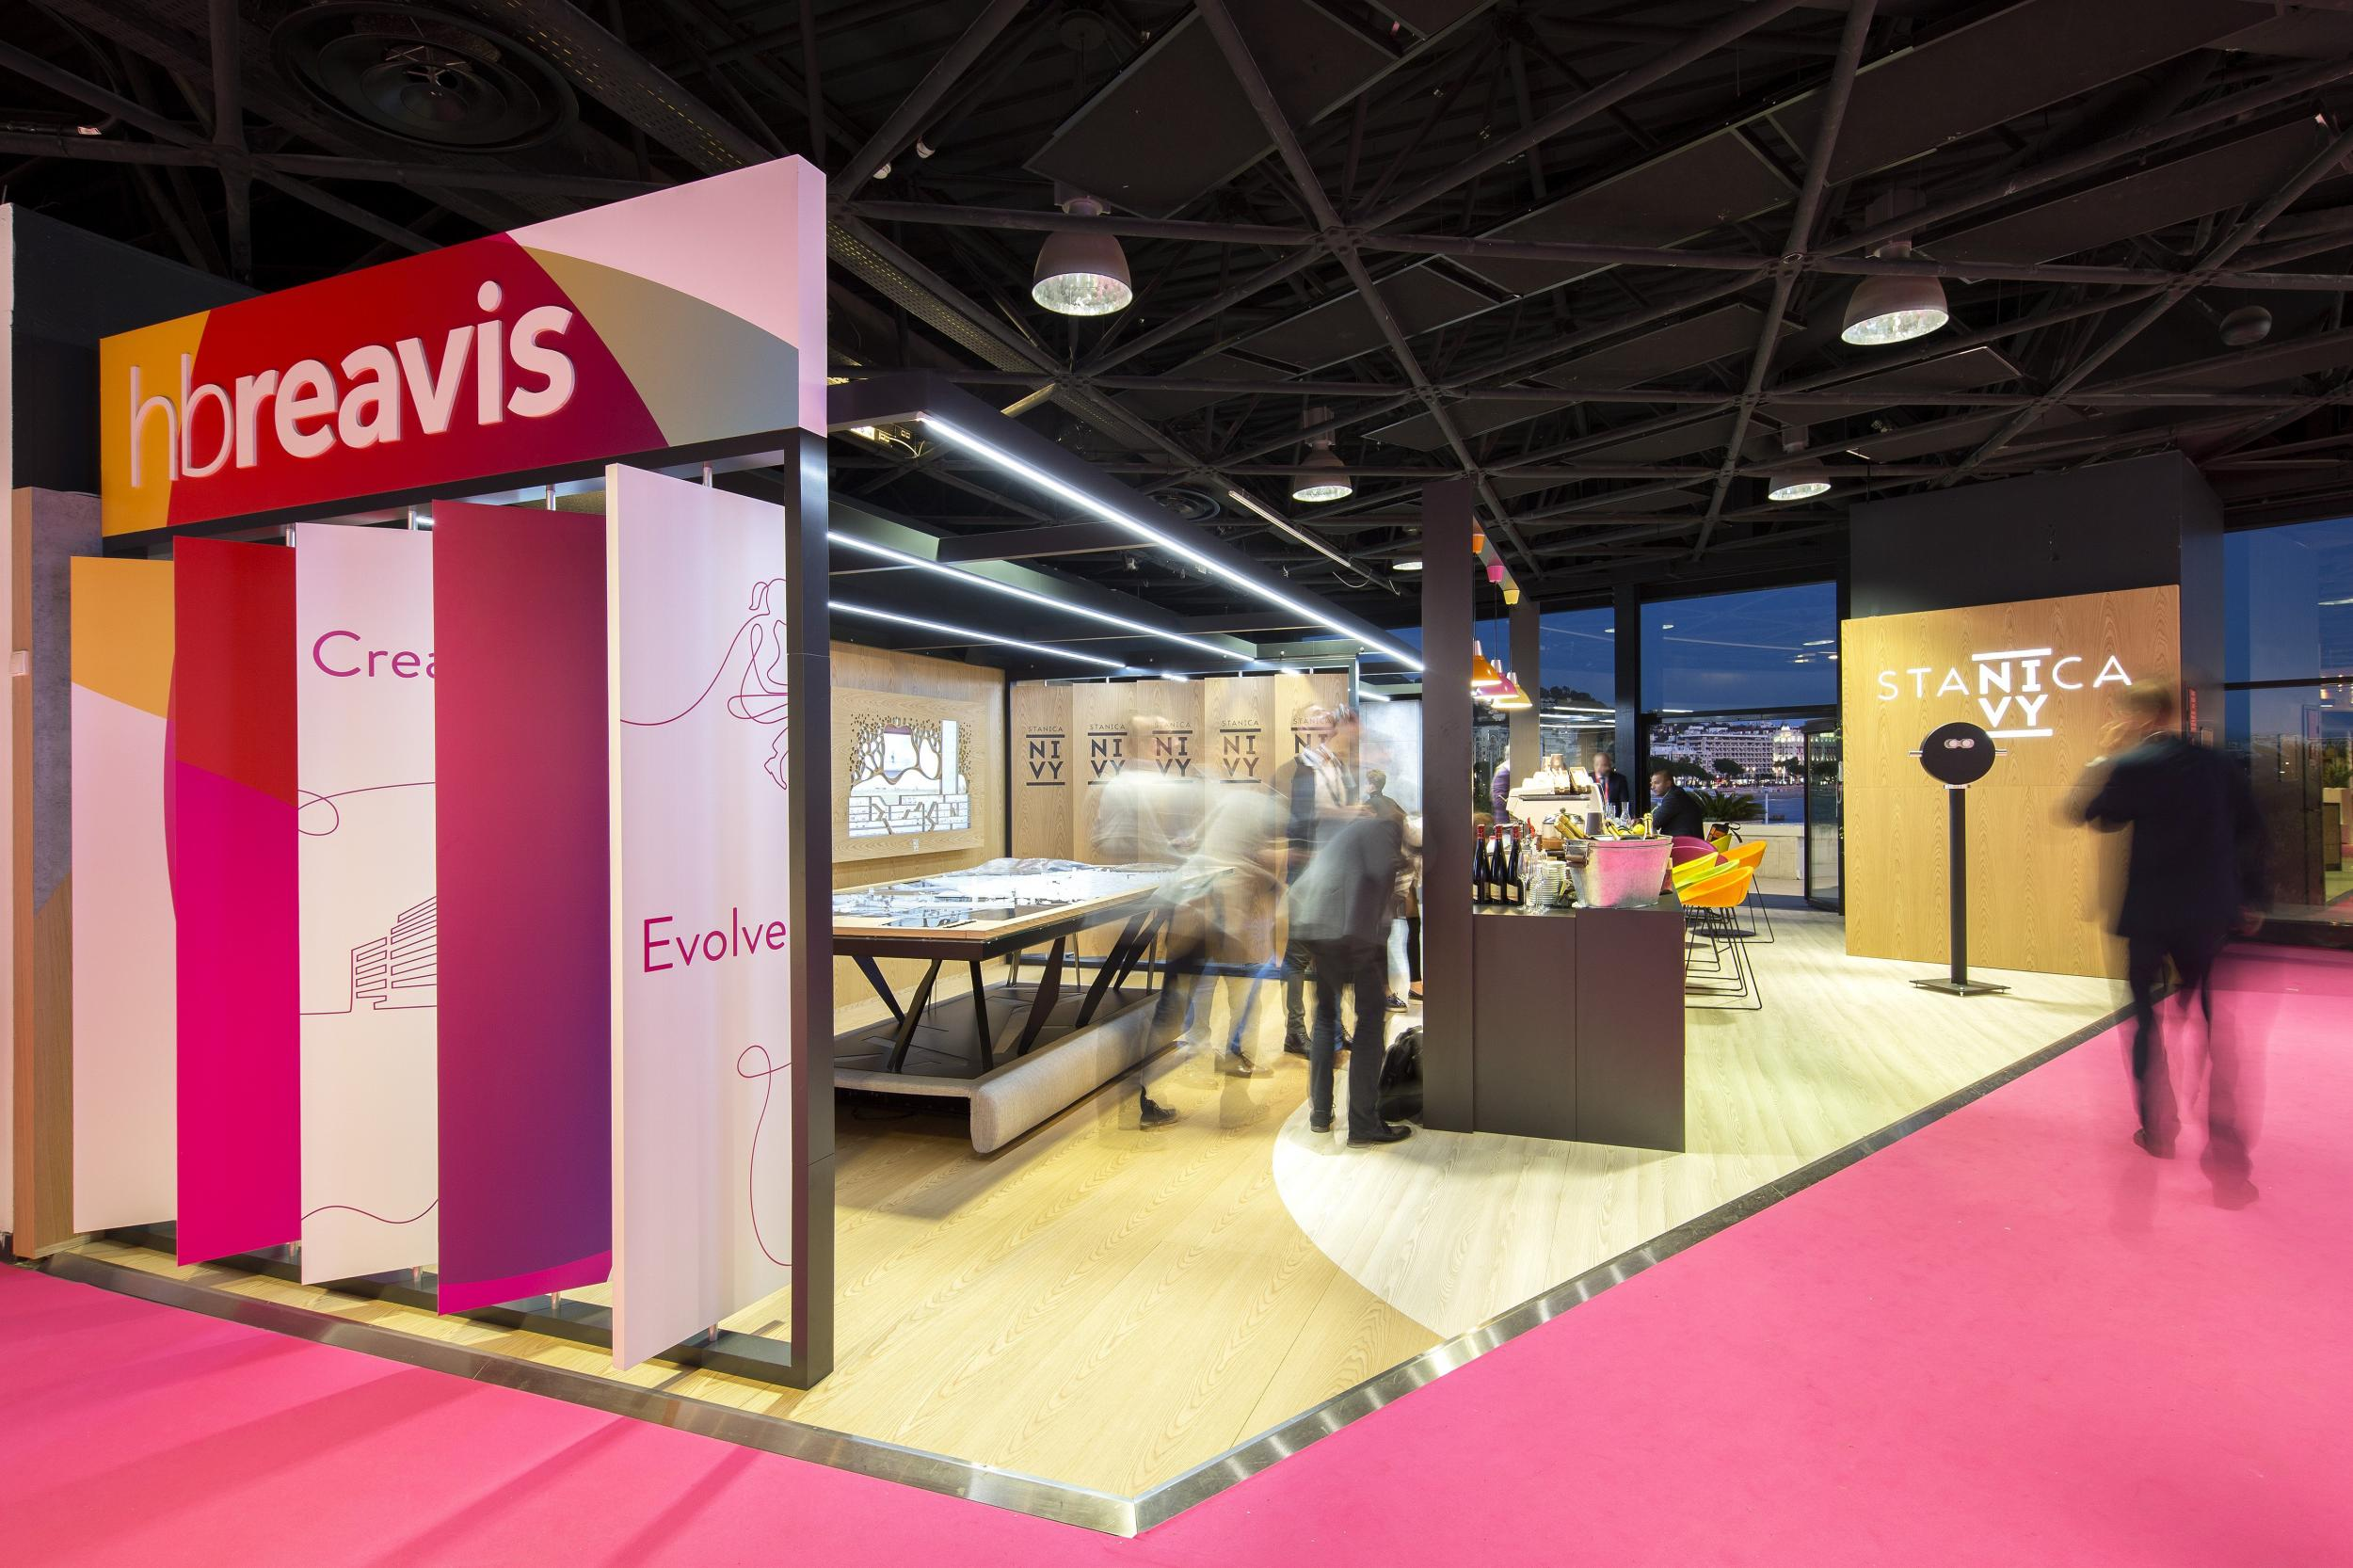 Exhibition Stand Guidelines : Exhibition stand hb reavis mapic cannes france